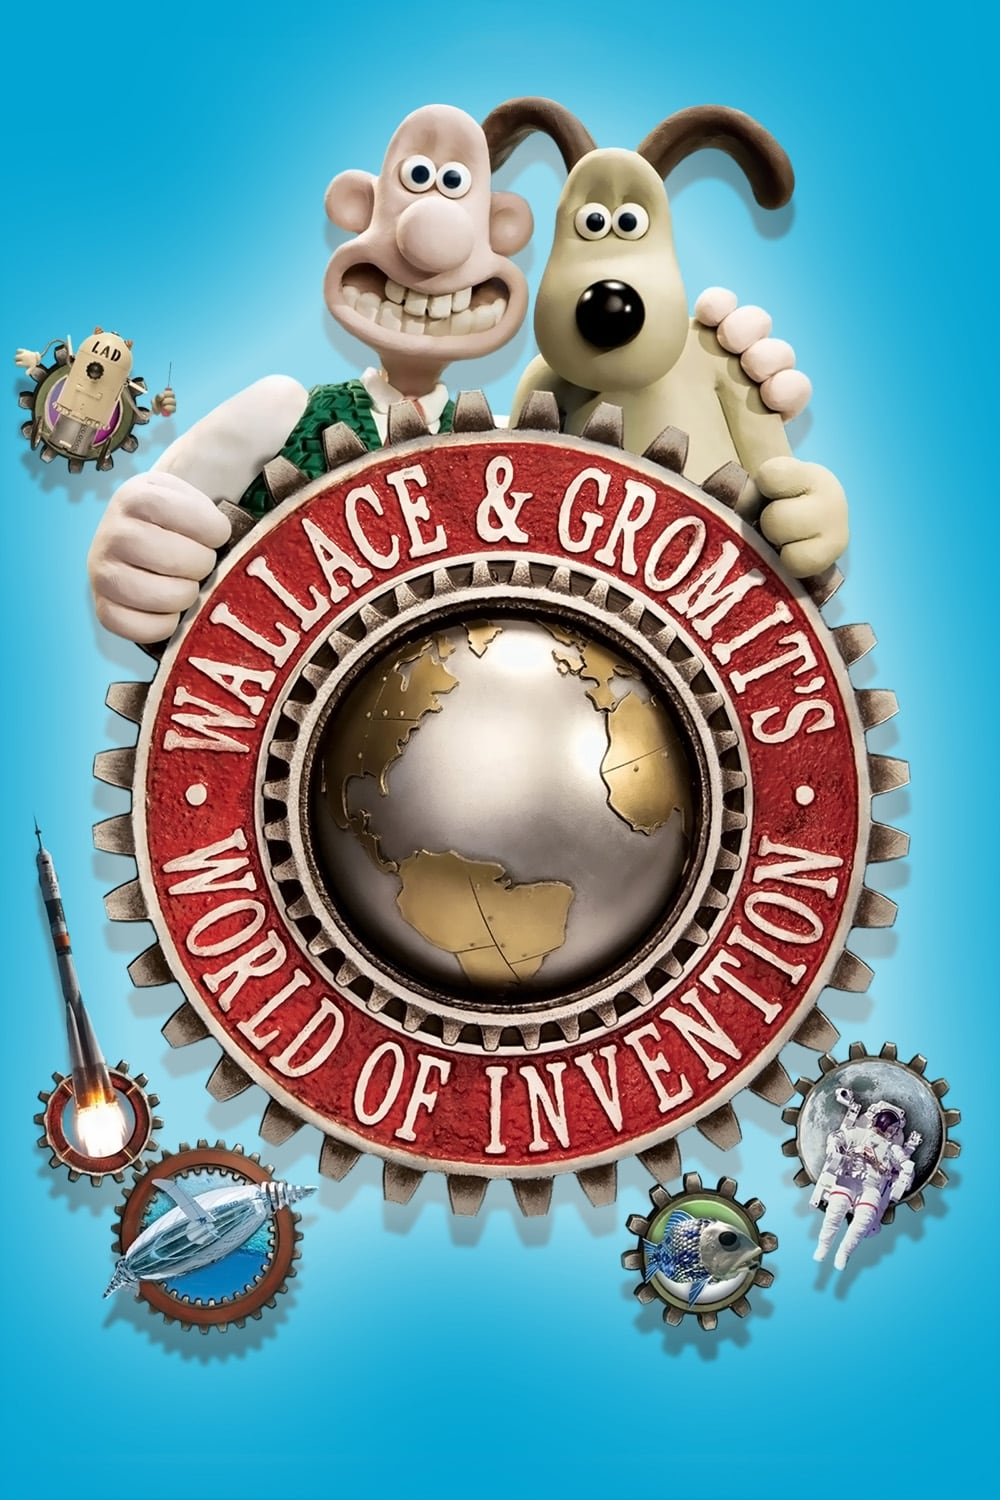 Wallace & Gromit's World of Invention (2010)